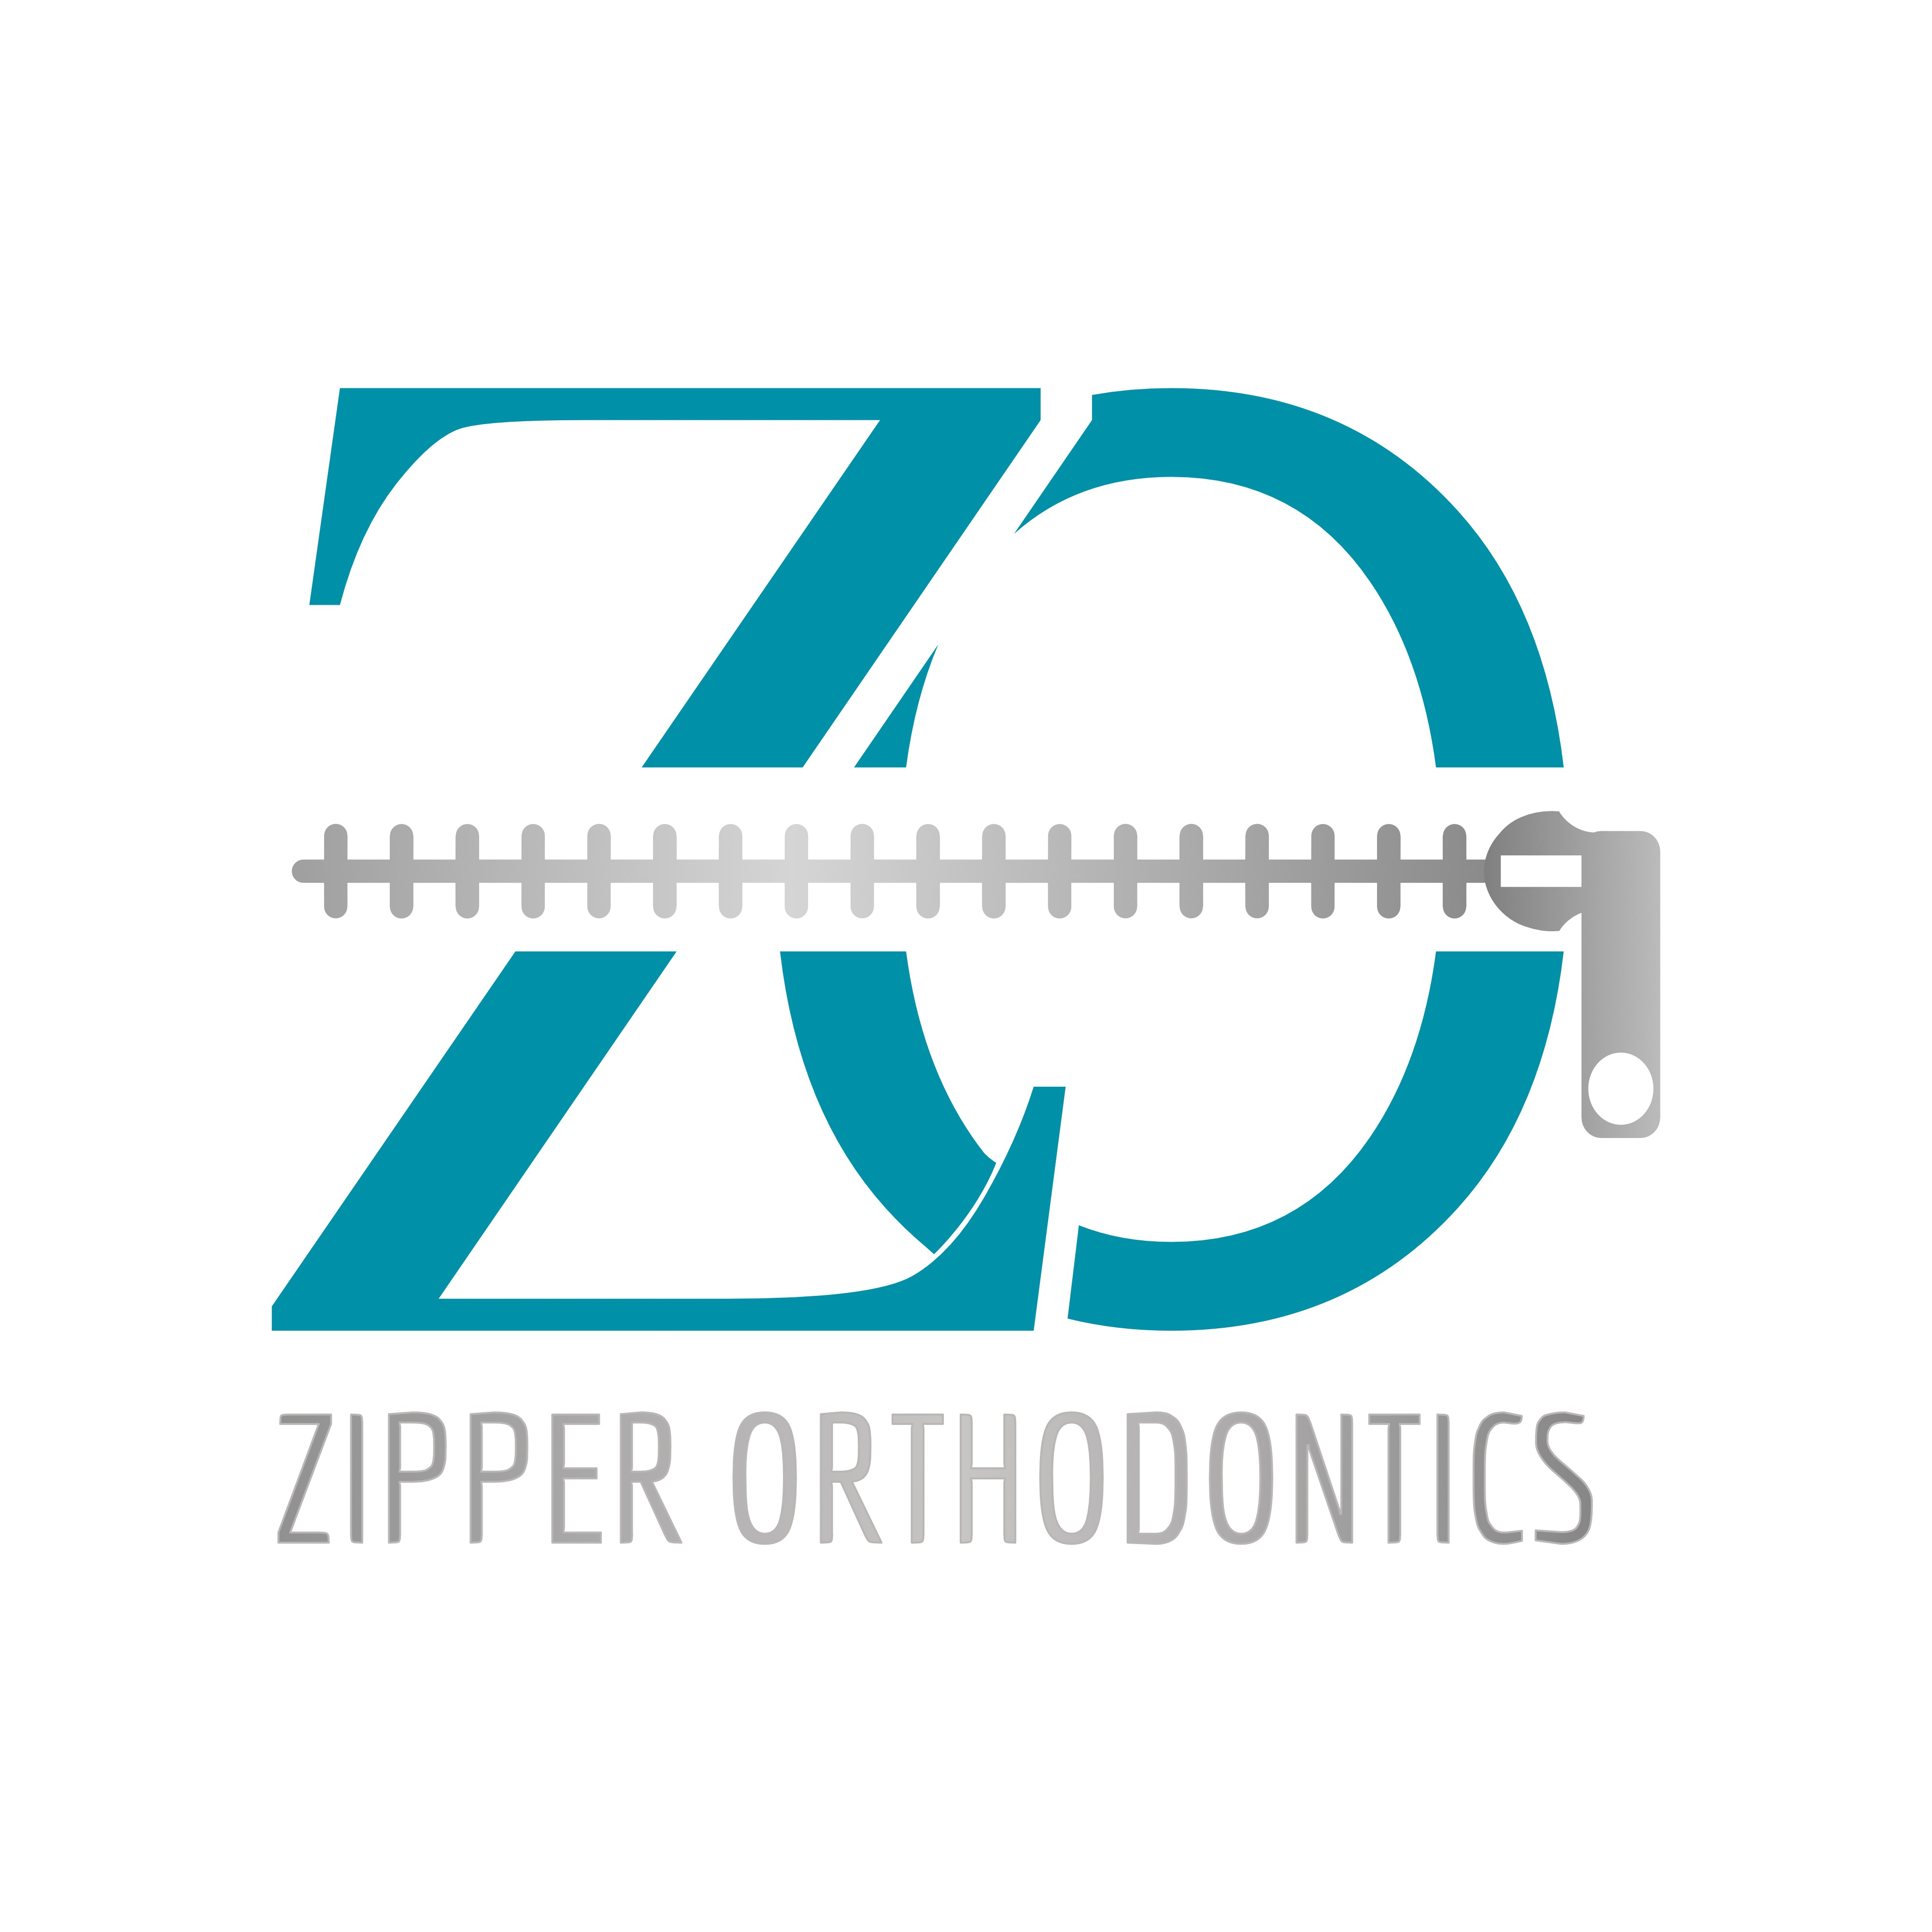 Design a logo with Braces in the shape of a Zipper